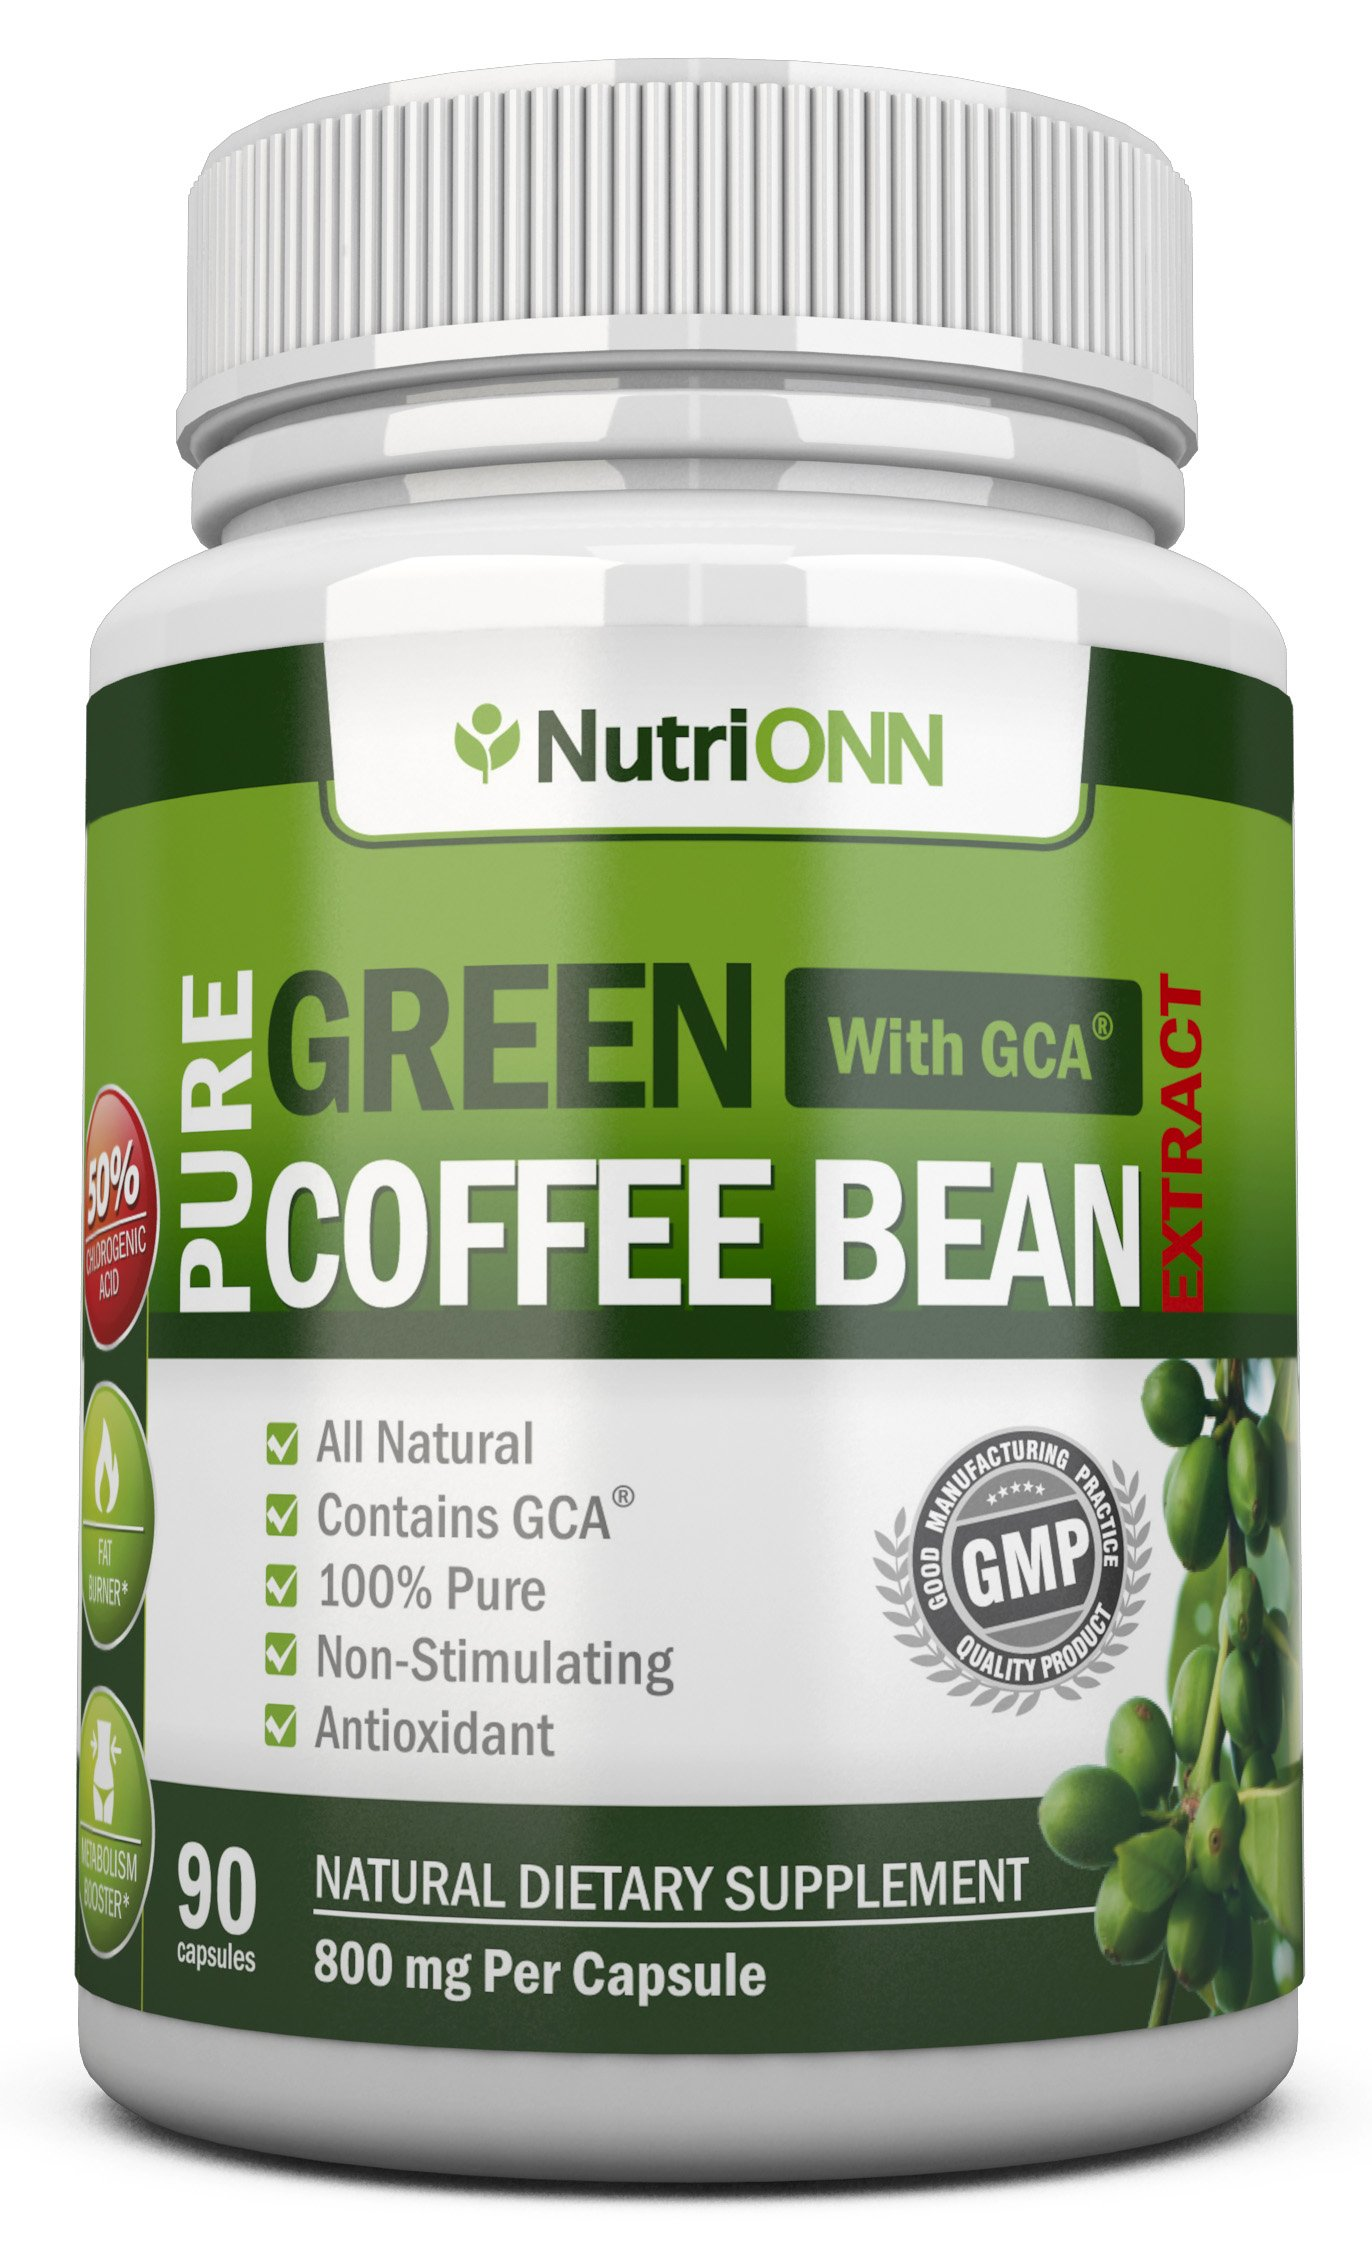 GREEN COFFEE BEAN EXTRACT with GCA, 800mg - 90 Vegetarian Capsules - Best Value For Price! - Highest Quality Pure Natural Coffee Extract for Weight Loss by NutriONN